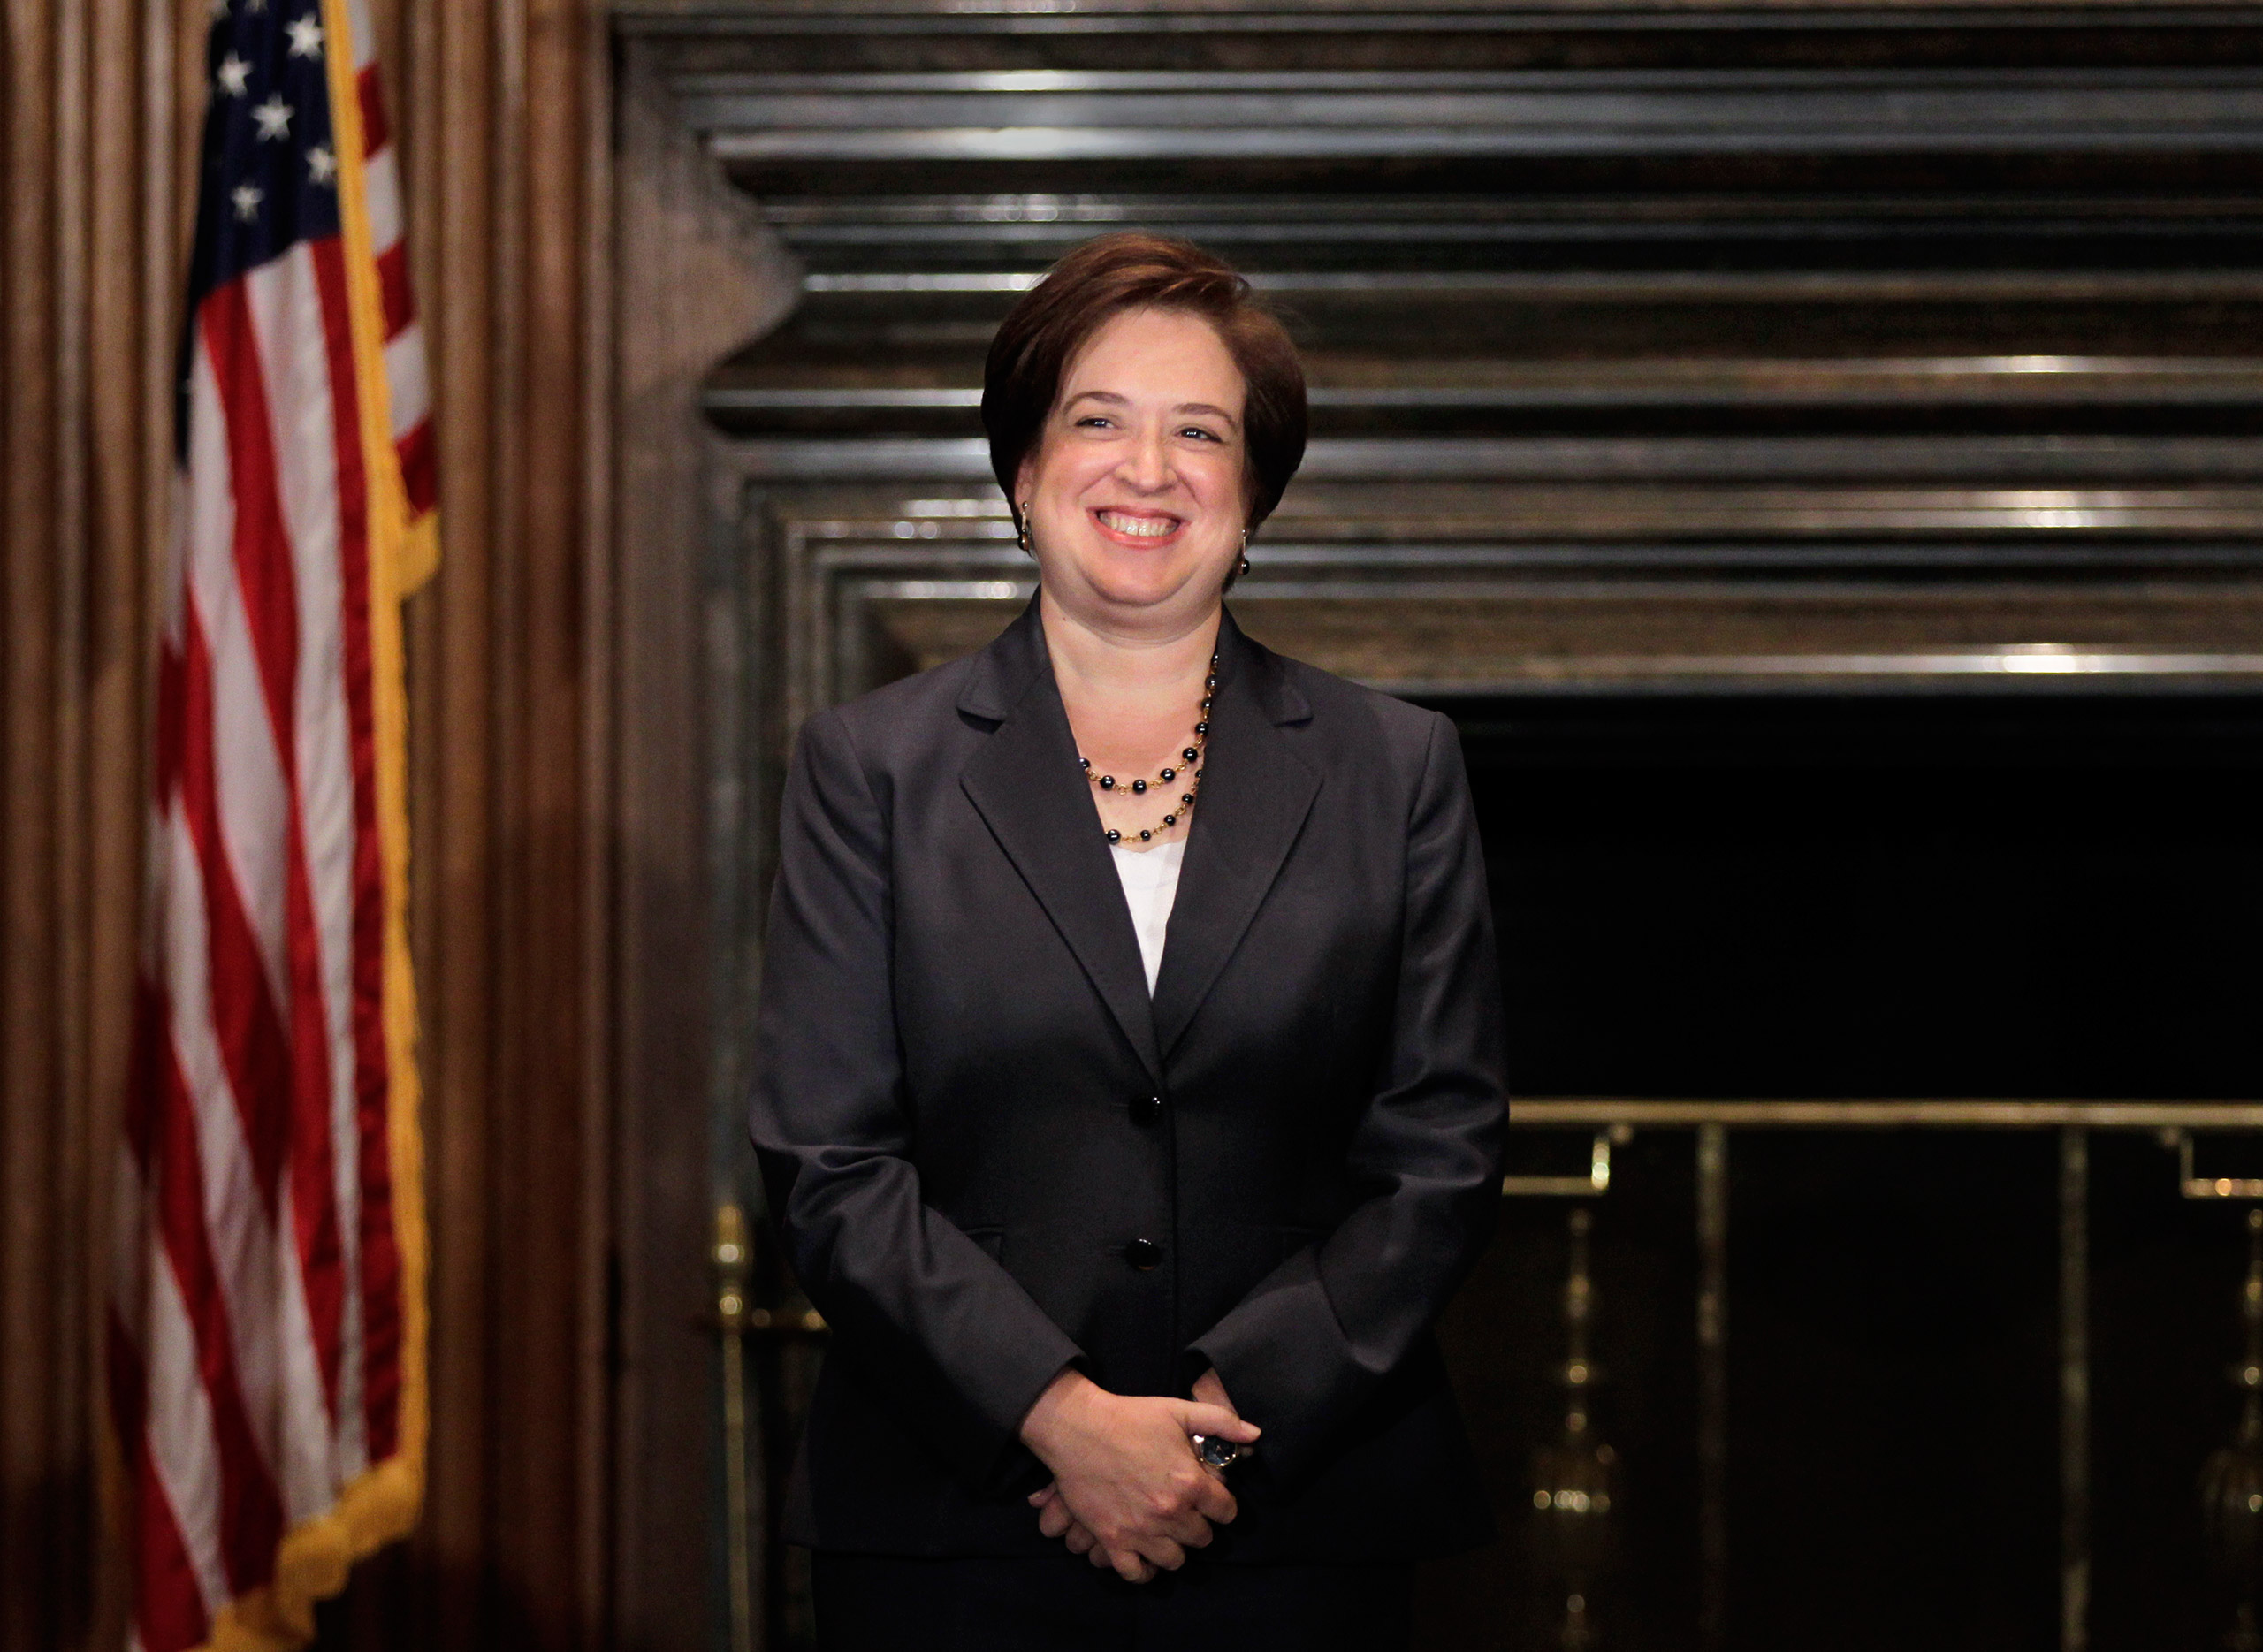 Elena Kagan smiles after being sworn in as the Supreme Court's newest member by Chief Justice John Roberts at the Supreme Court Building August 7, 2010 in Washington, DC.